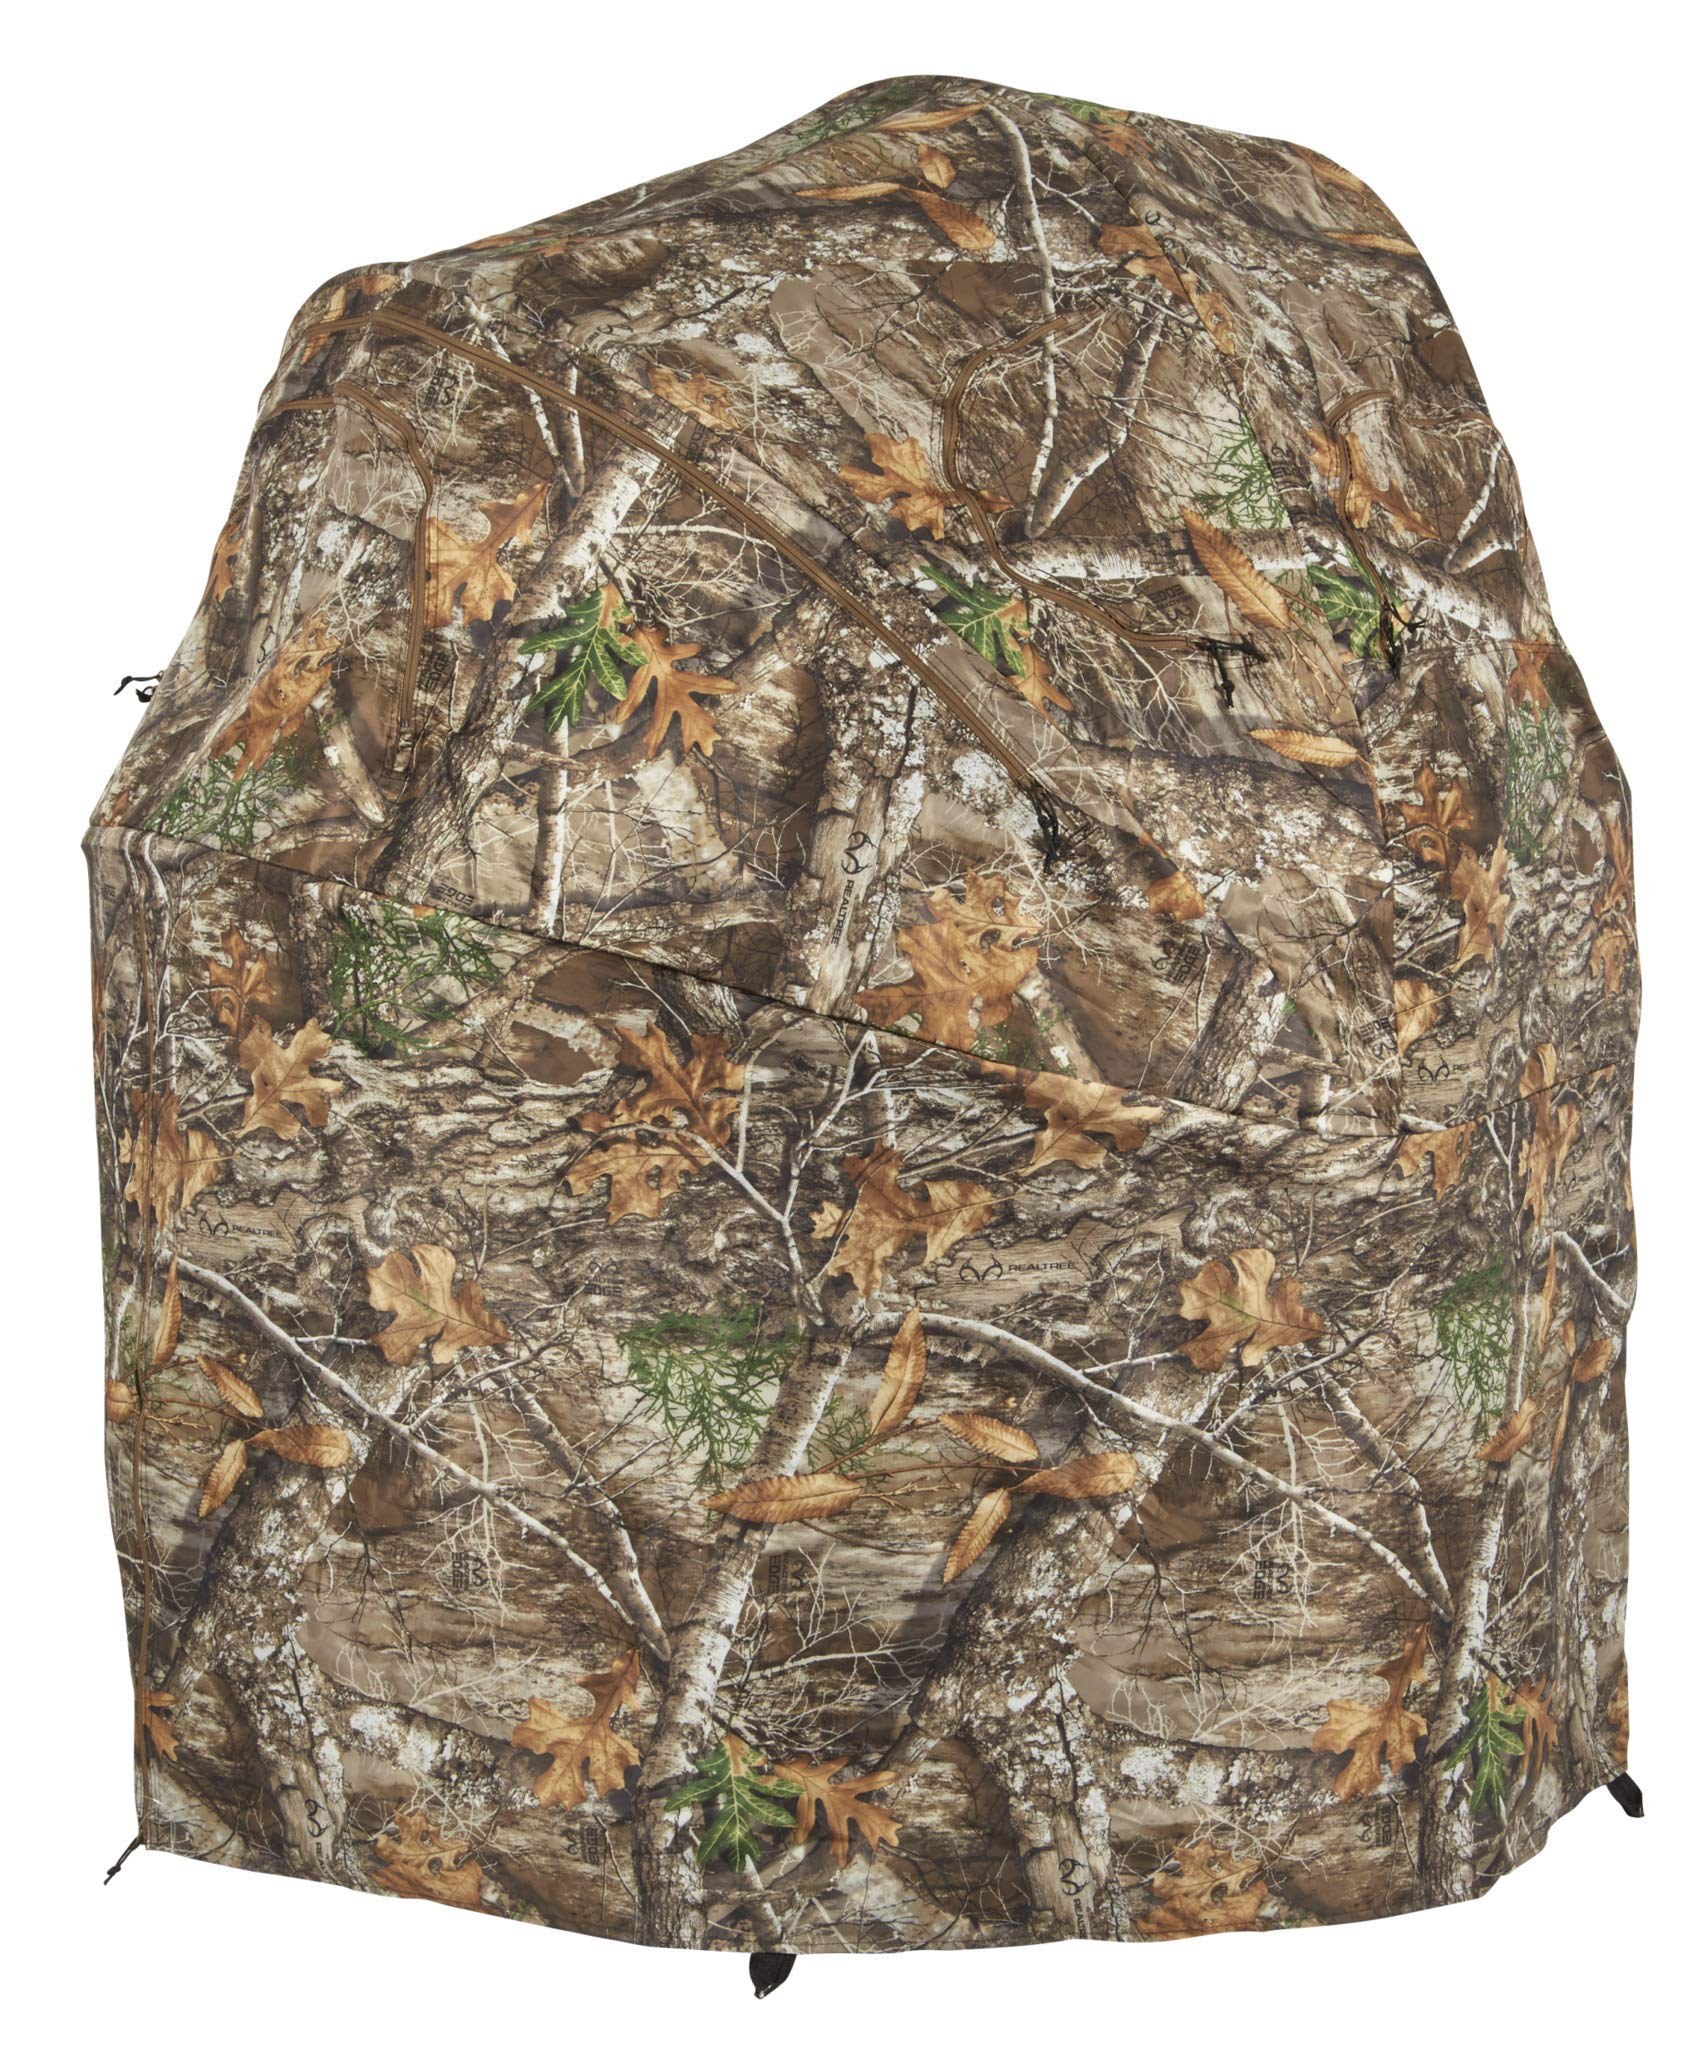 Ameristep Deluxe Tent Chair Blind by Ameristep (Image #1)